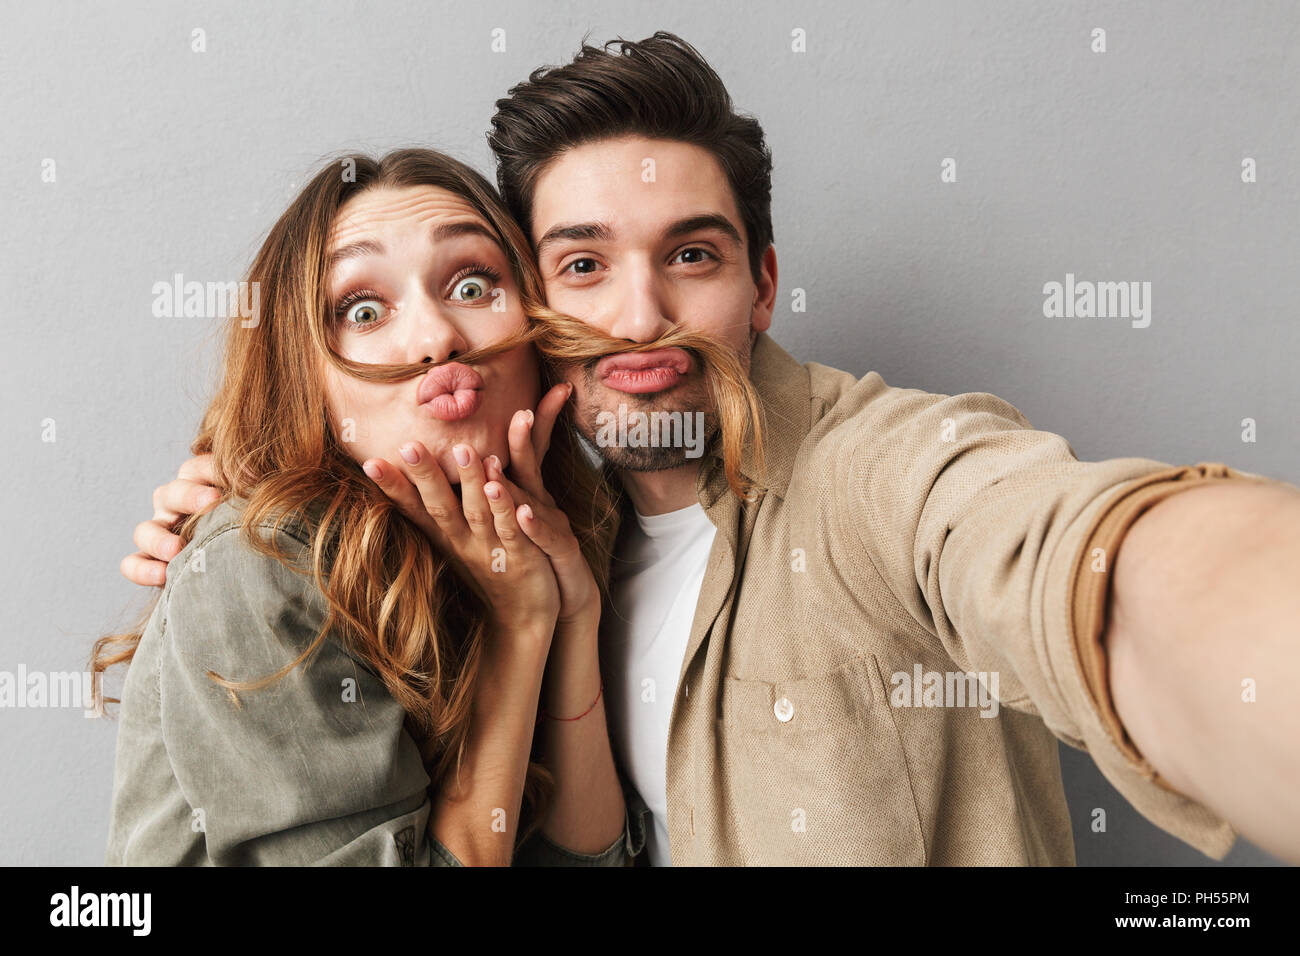 Portrait of a funny young couple hugging while taking a selfie and grimacing isolated over gray background - Stock Image